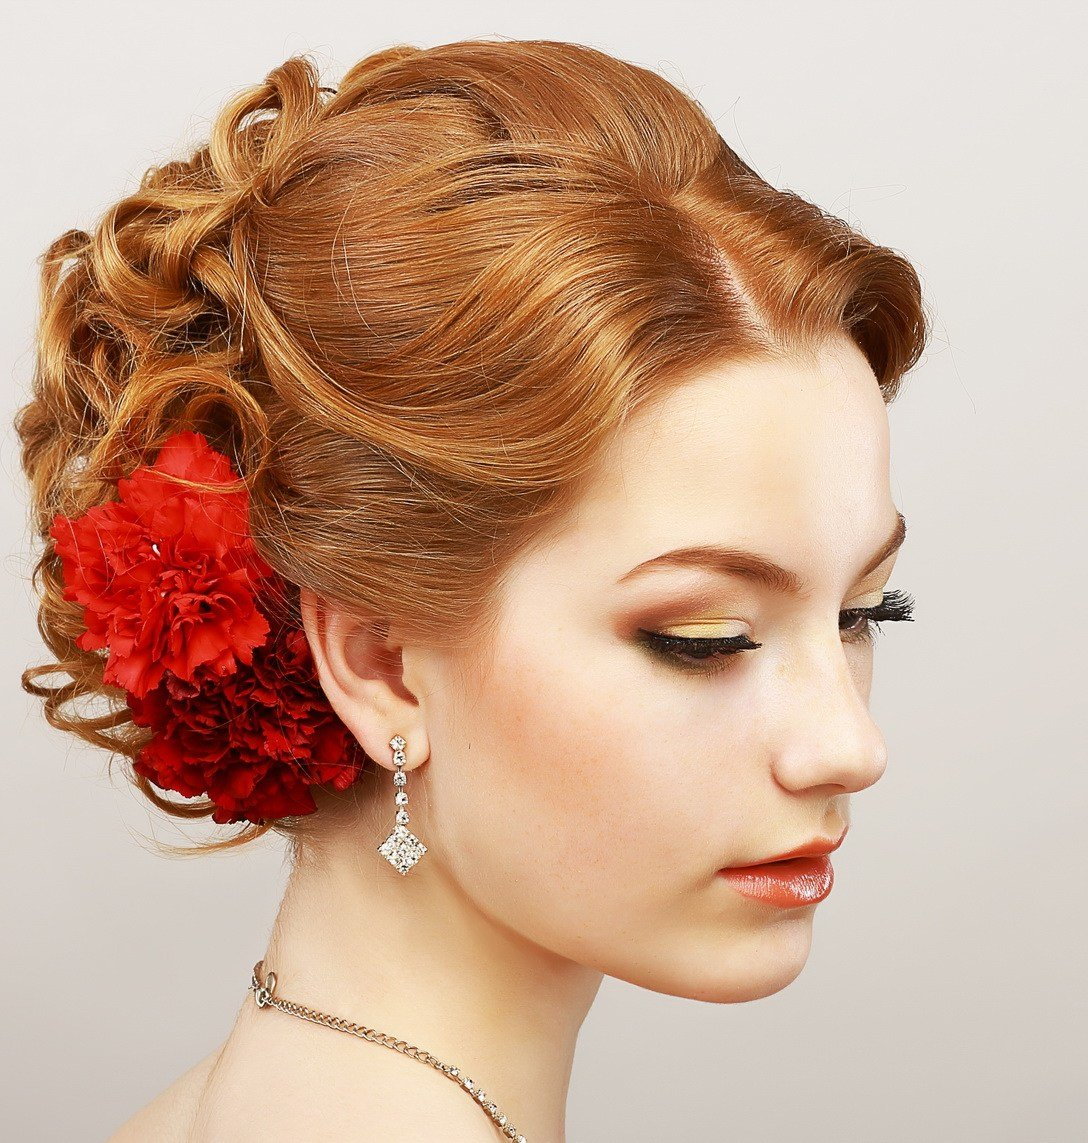 The Best 16 Easy Prom Hairstyles For Short And Medium Length Hair Pictures